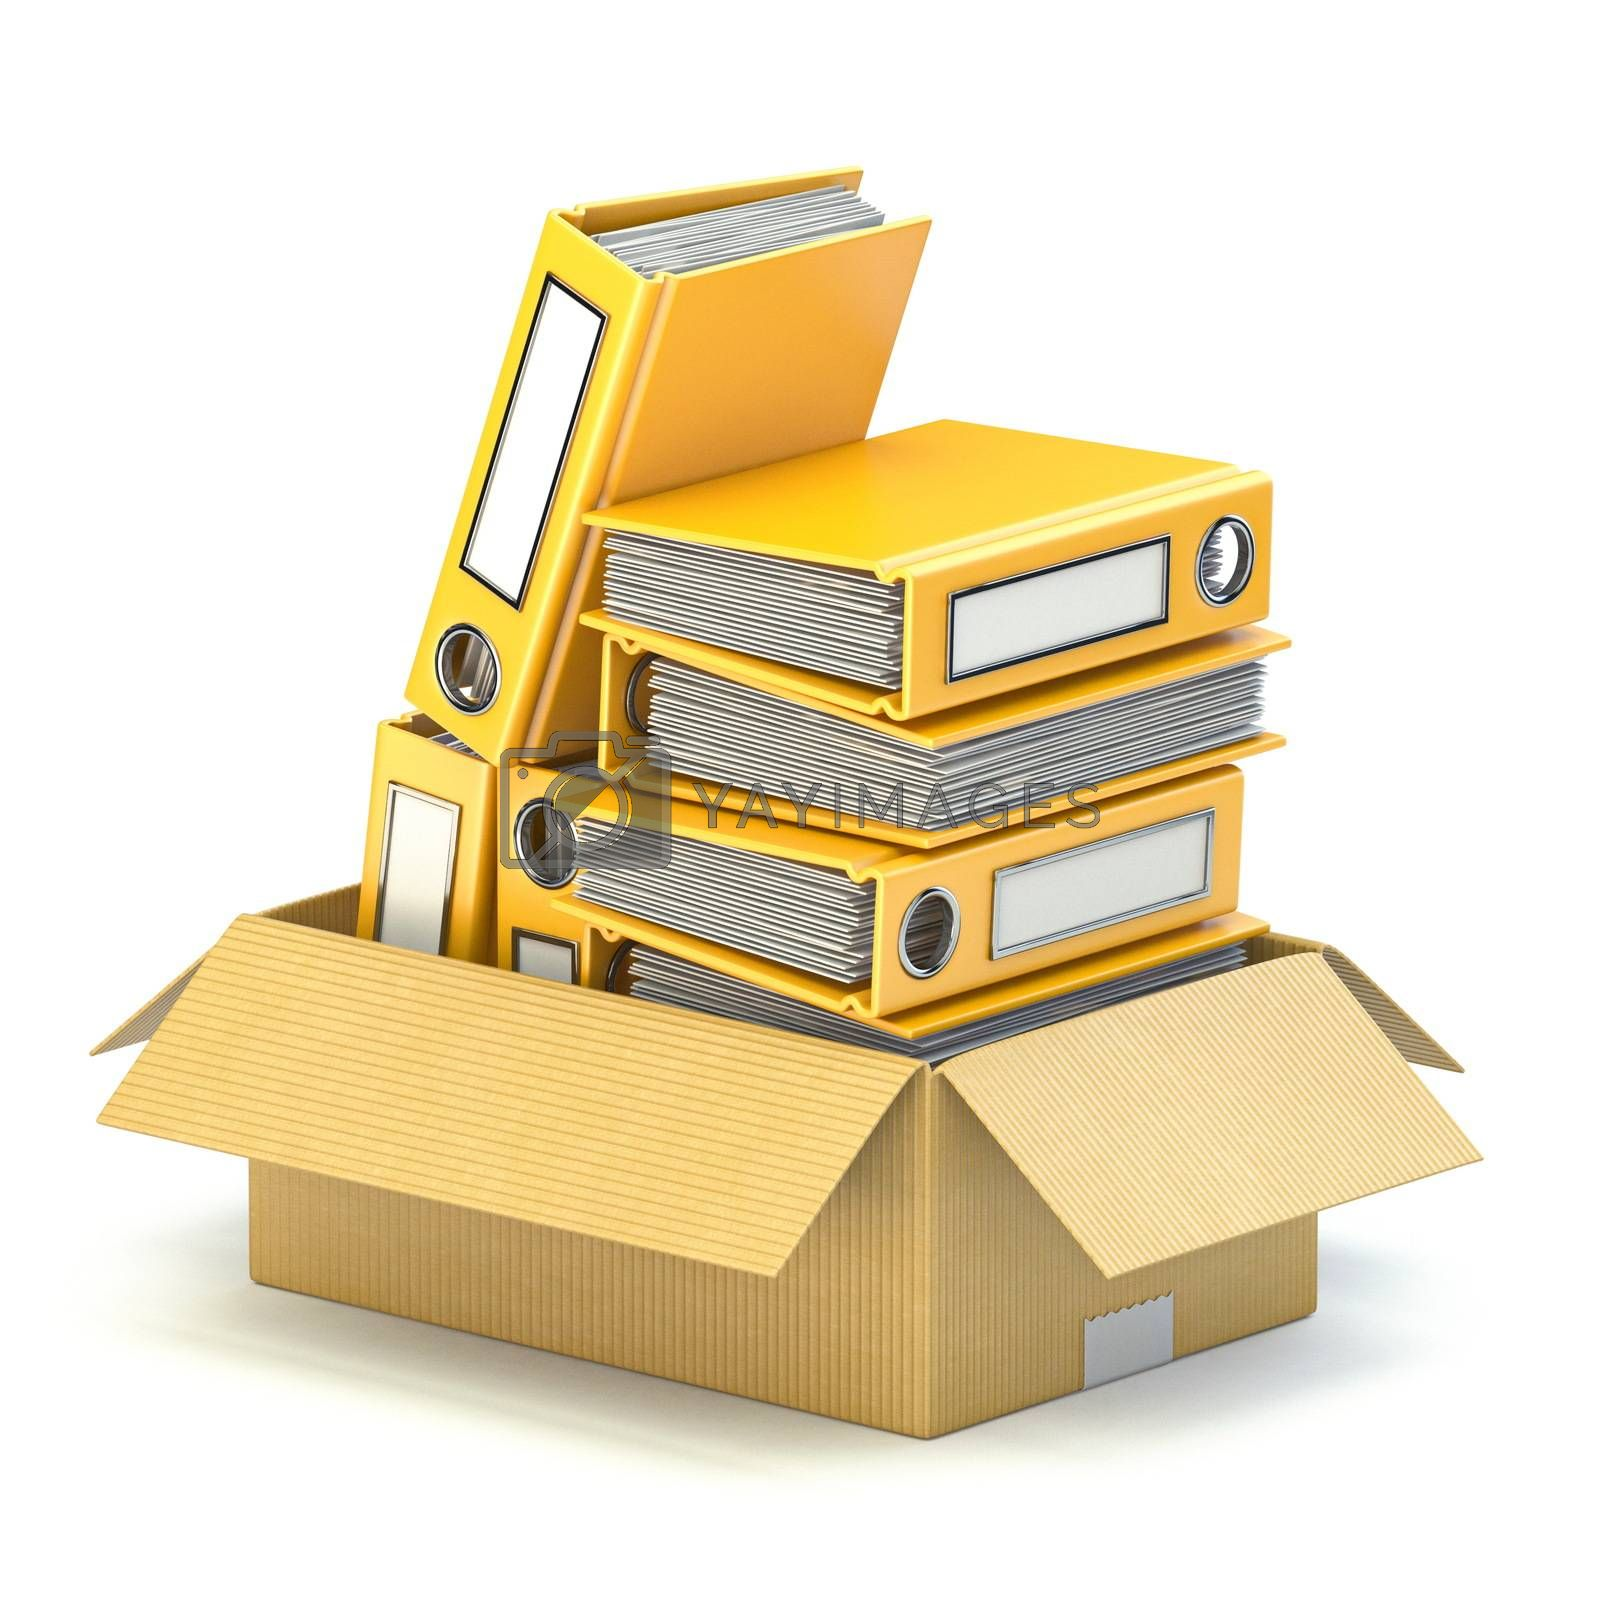 Yellow file folders in cardboard box 3D render illustration isolated on white background